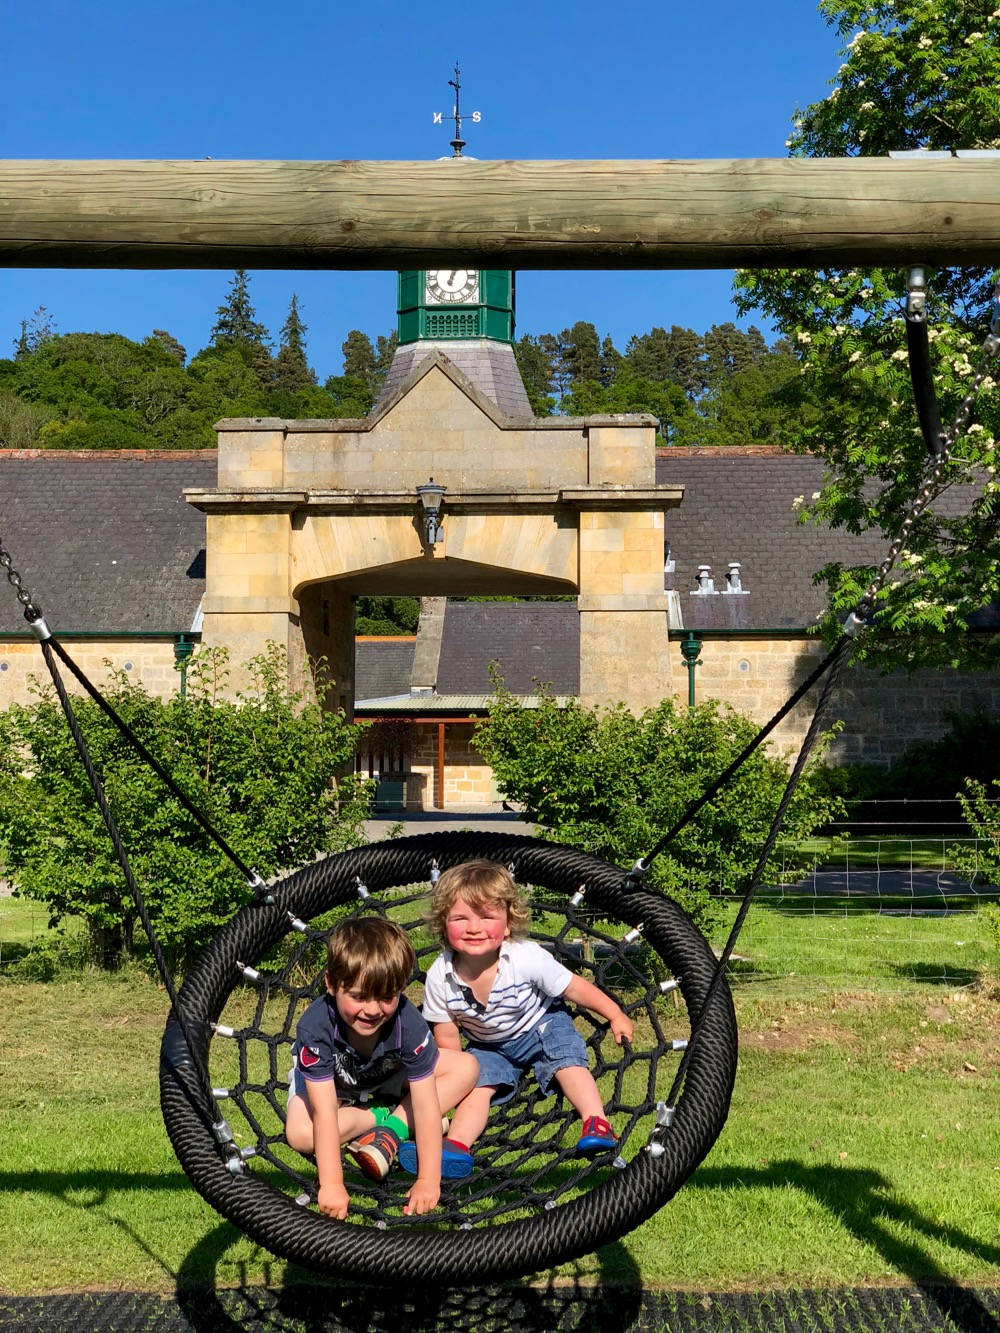 on the swing in the playpark at Logie Steading